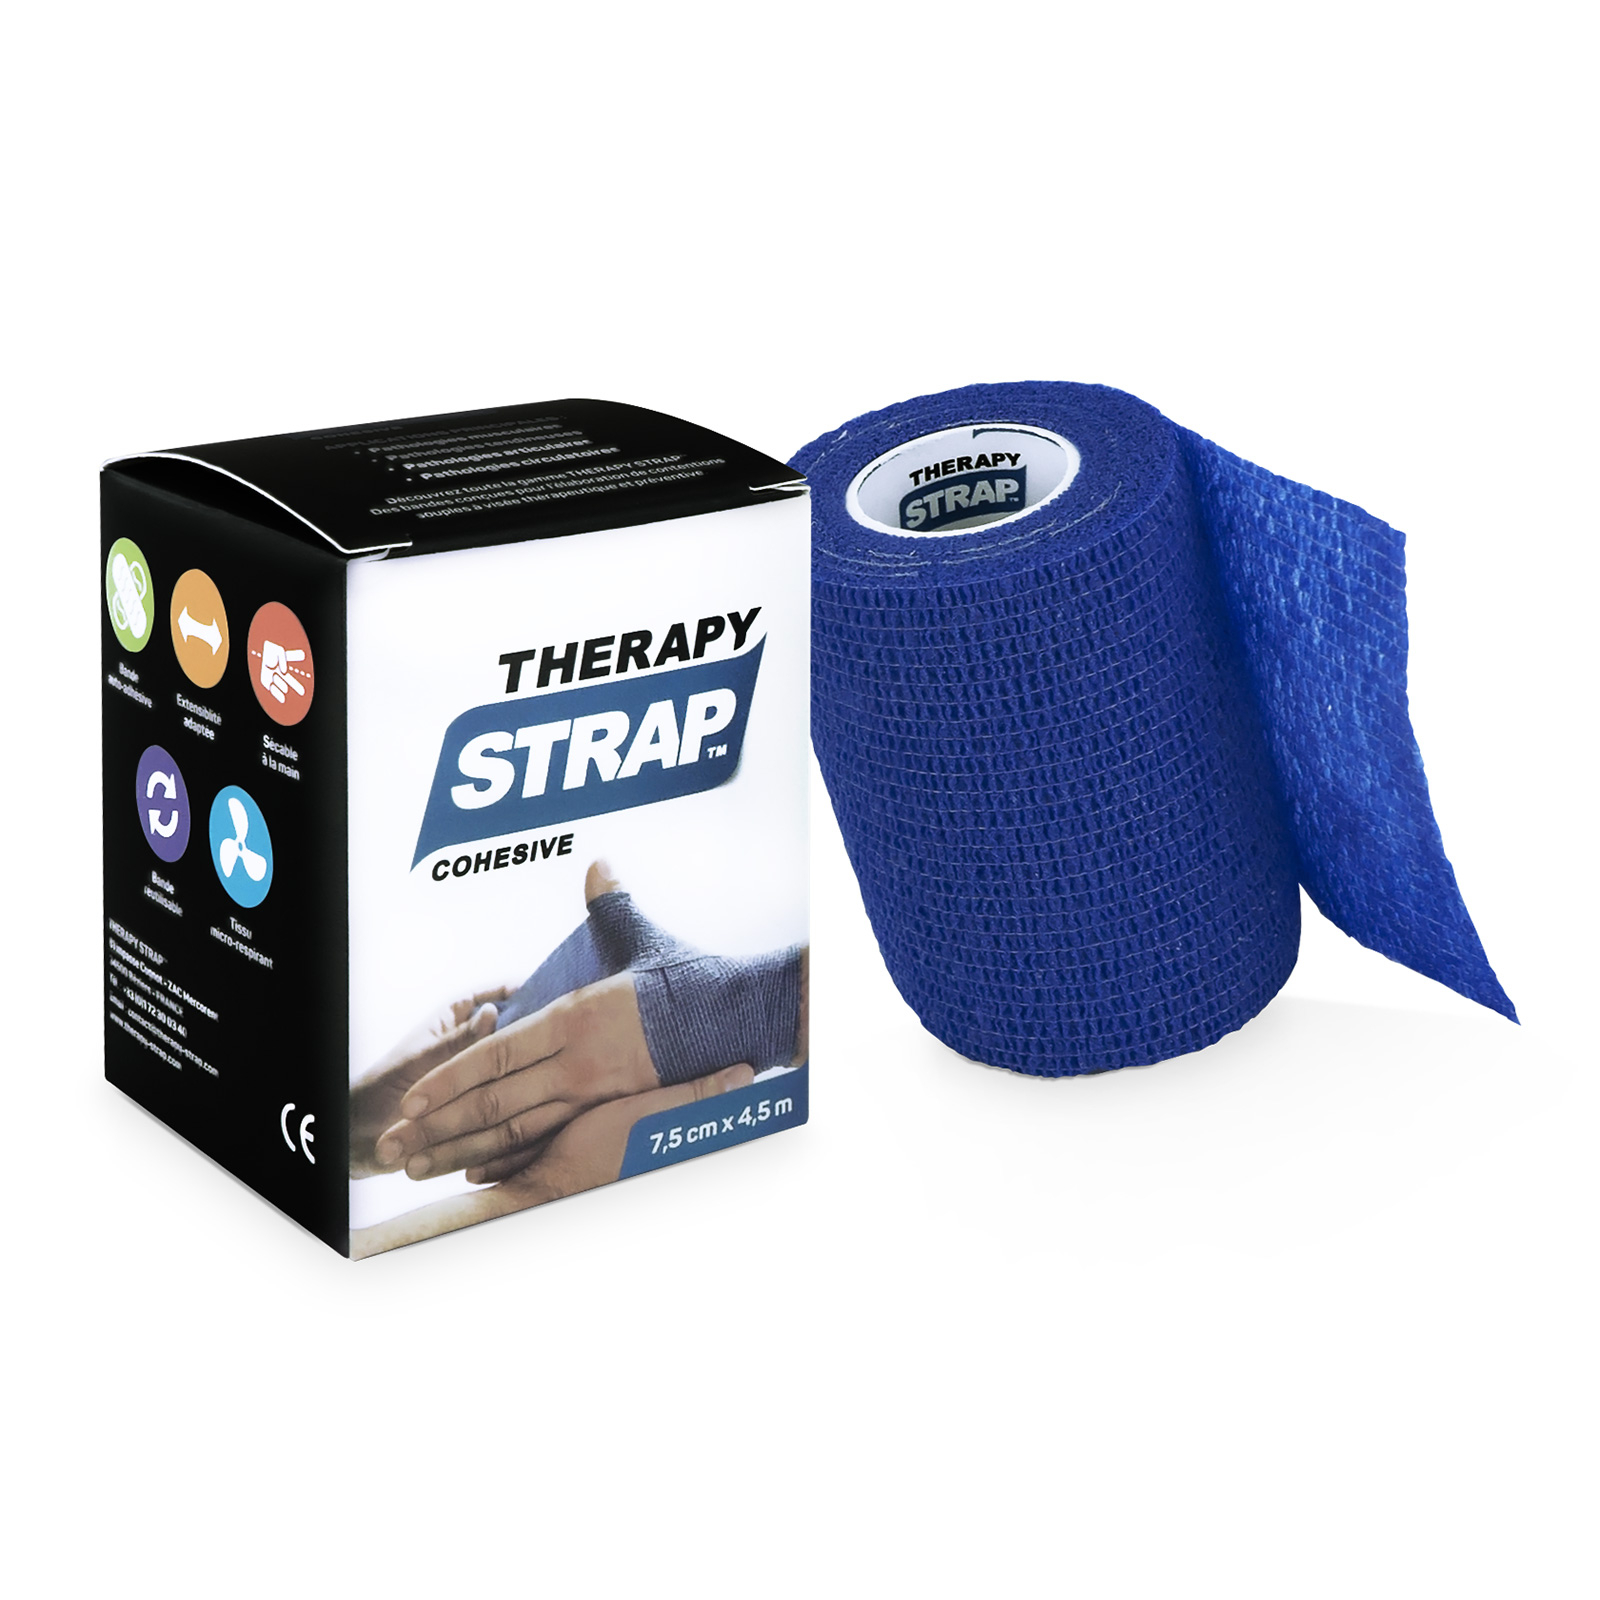 Therapy-Strap™ Cohesive